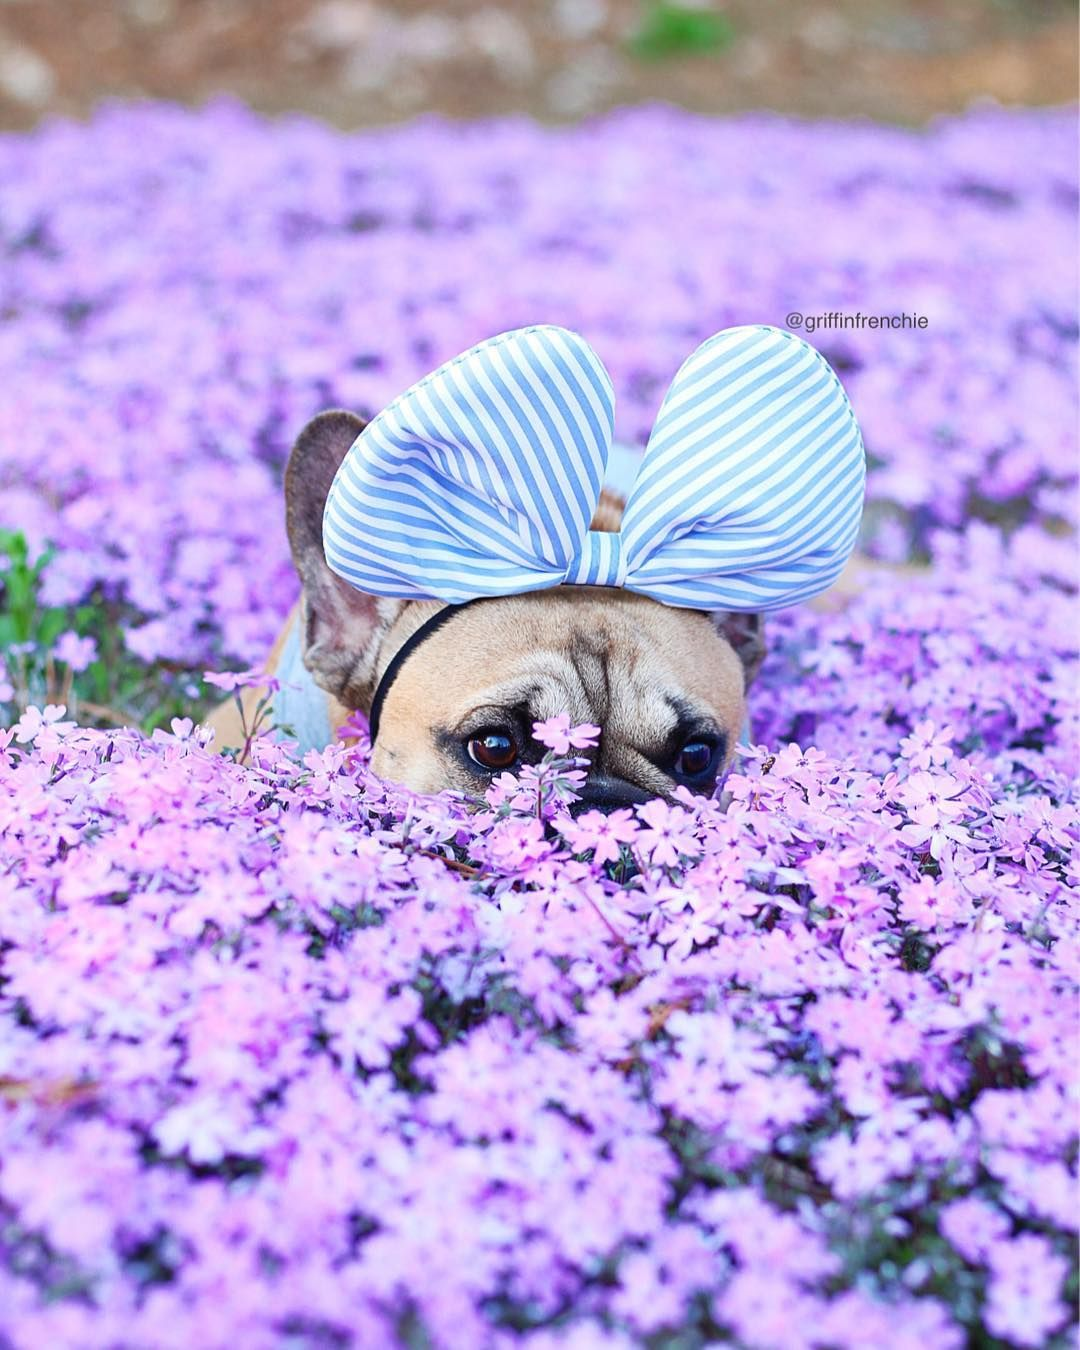 Why French Bulldogs puppies cost that much? French